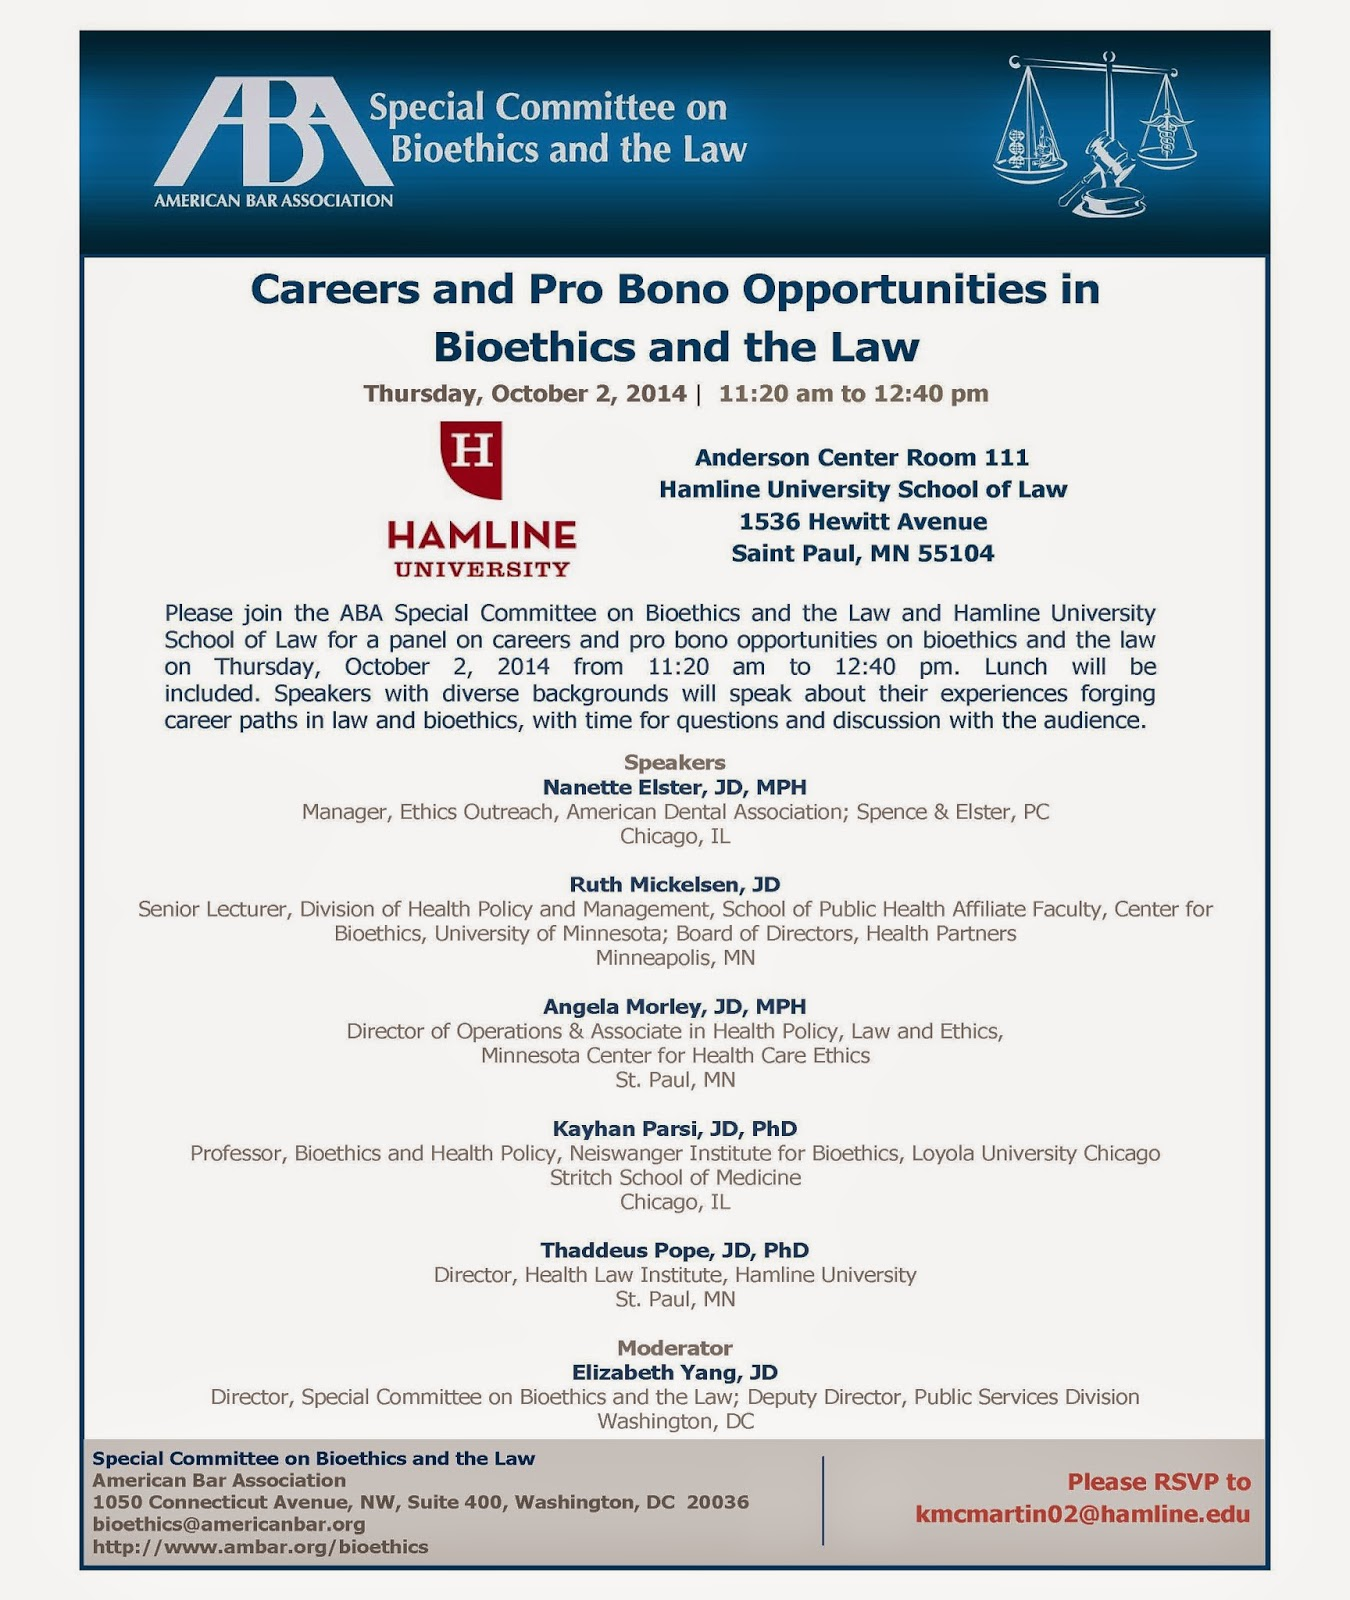 Careers & Pro Bono Opportunities in Bioethics & Law